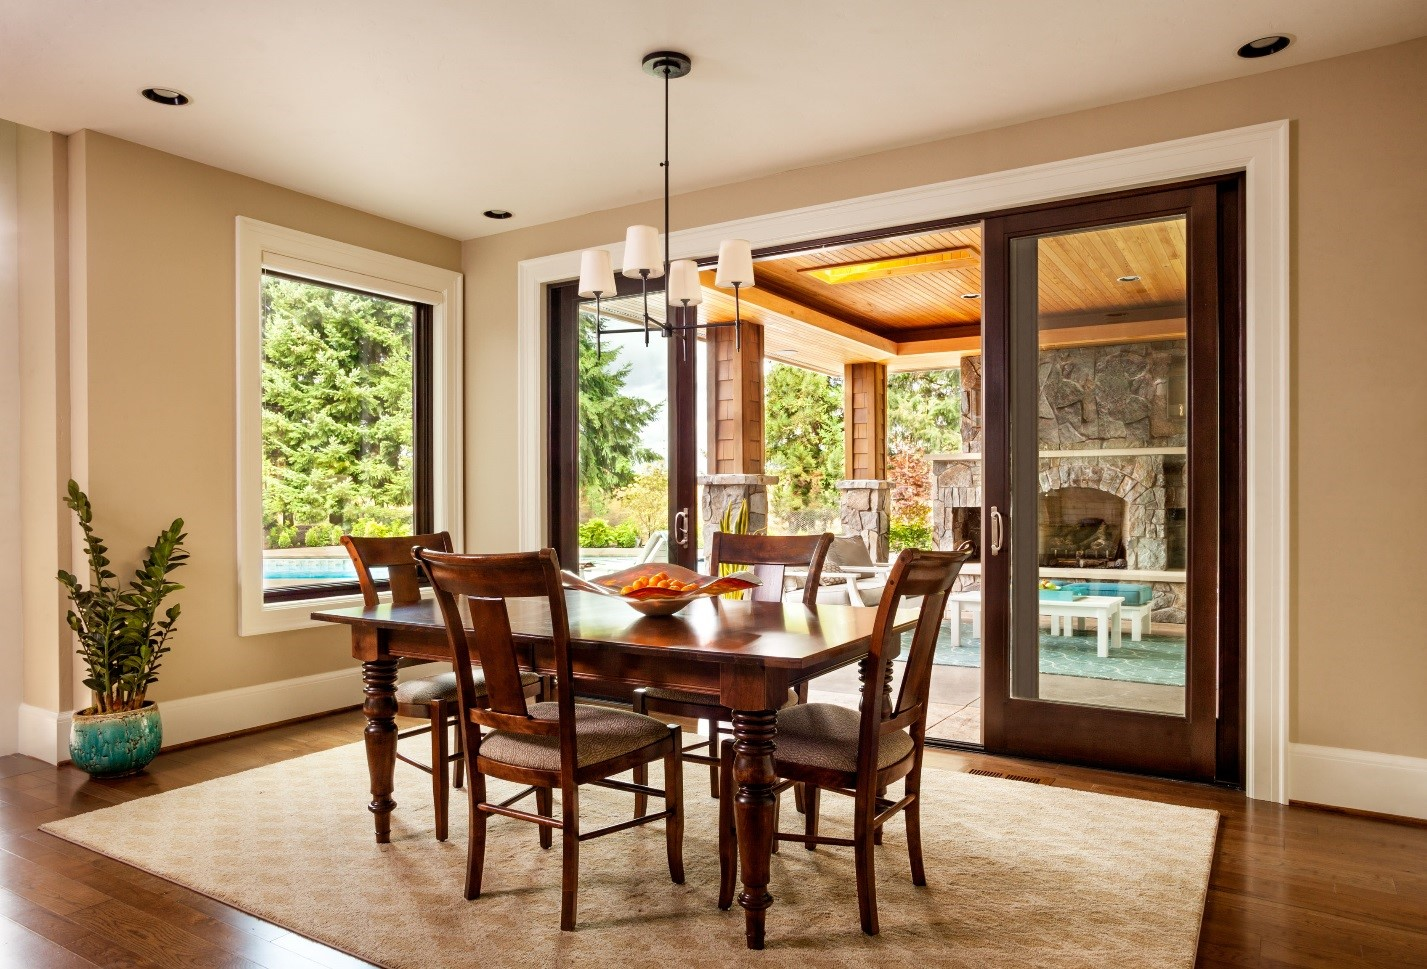 Dining room with french sliding patio doors and window